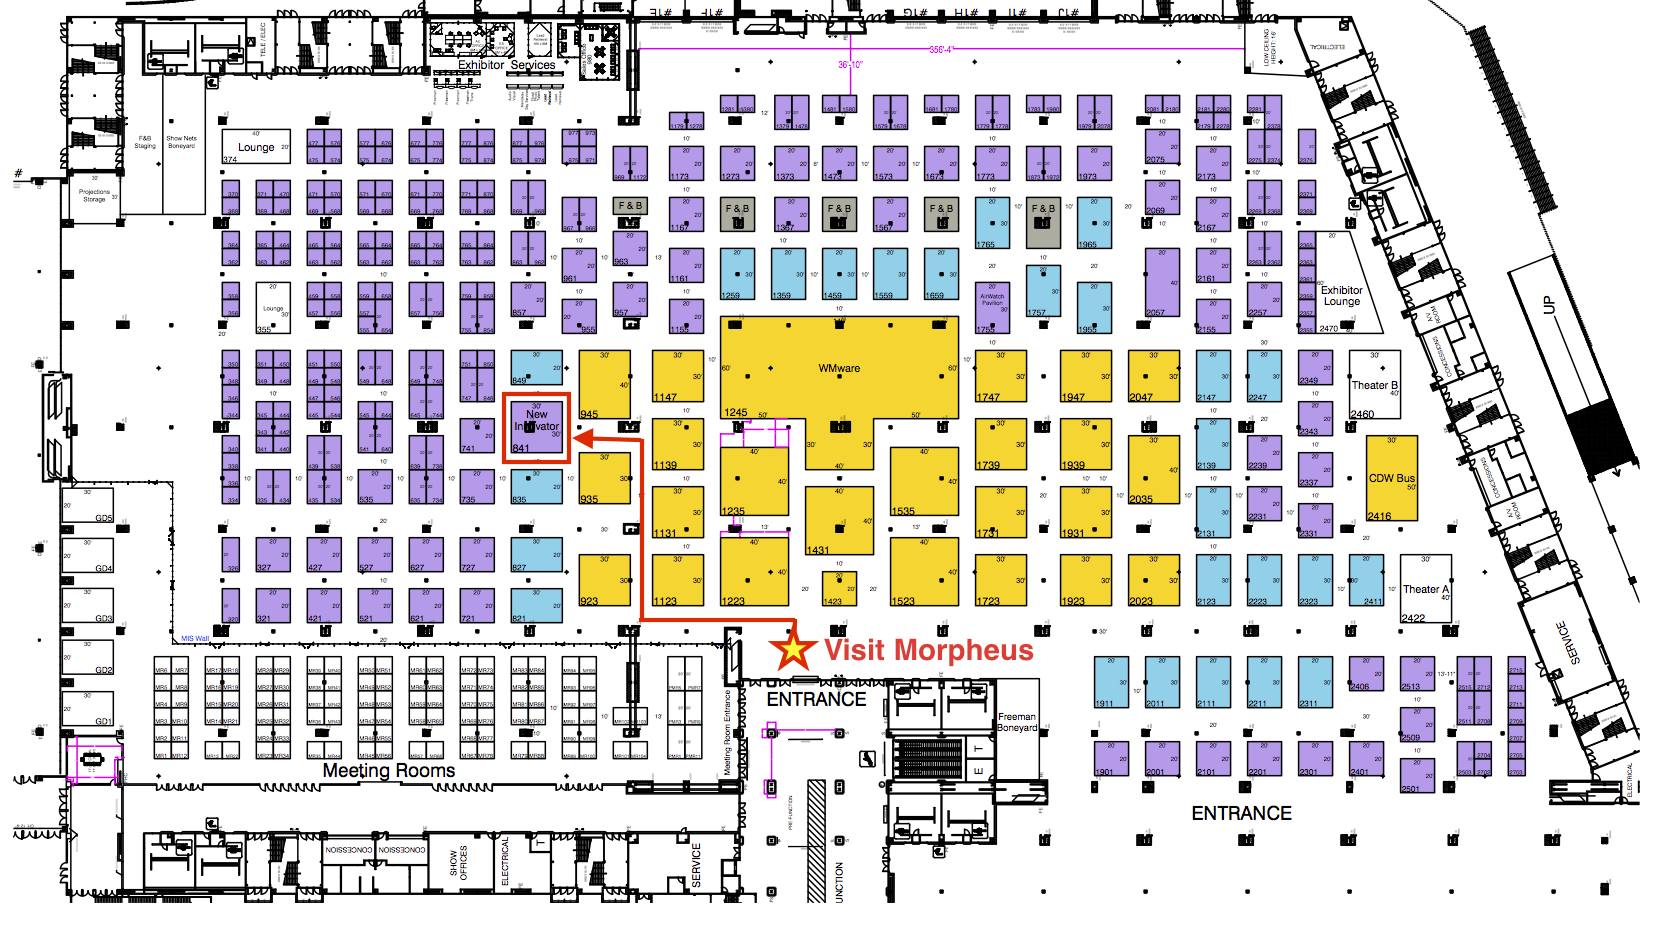 VMworld-Mandalay-Bay-Map_original Mandalay Bay Convention Center Map on mirage convention center map, mandalay event center seating, austin convention center map, san jose convention center map, charlotte convention center map, westgate las vegas resort & casino map, sands expo and convention center map, venetian congress center map, mandalay seating chart, baltimore convention center map, phoenix convention center map, las vegas convention center map, harrah's las vegas map, venetian conference center map, las vegas conference center map, columbus convention center map, fort worth convention center map, new orleans convention center map, long beach convention center map, la convention center map,